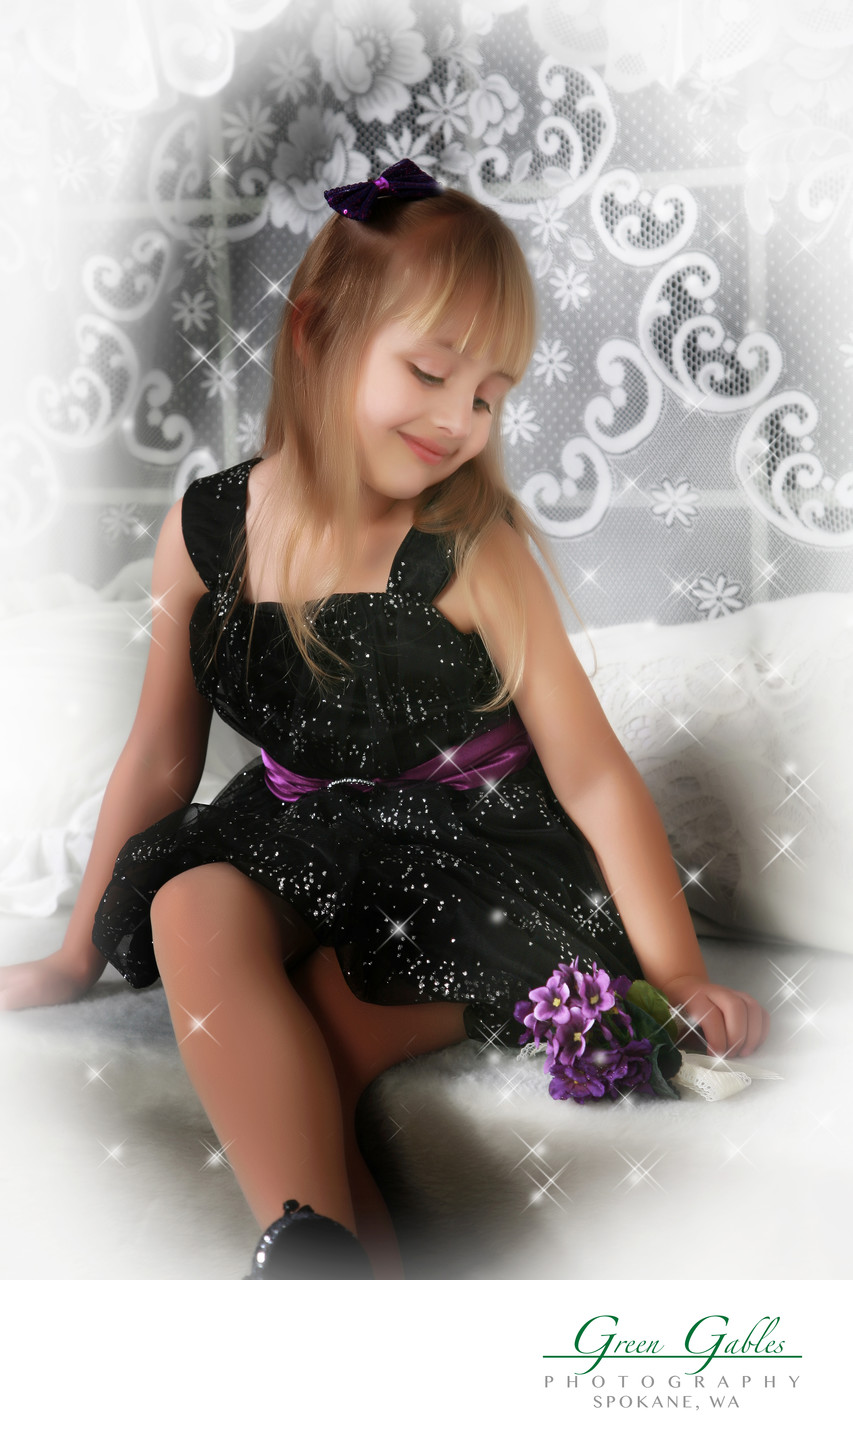 sparkles and stars, soft moment of little girl in window seat